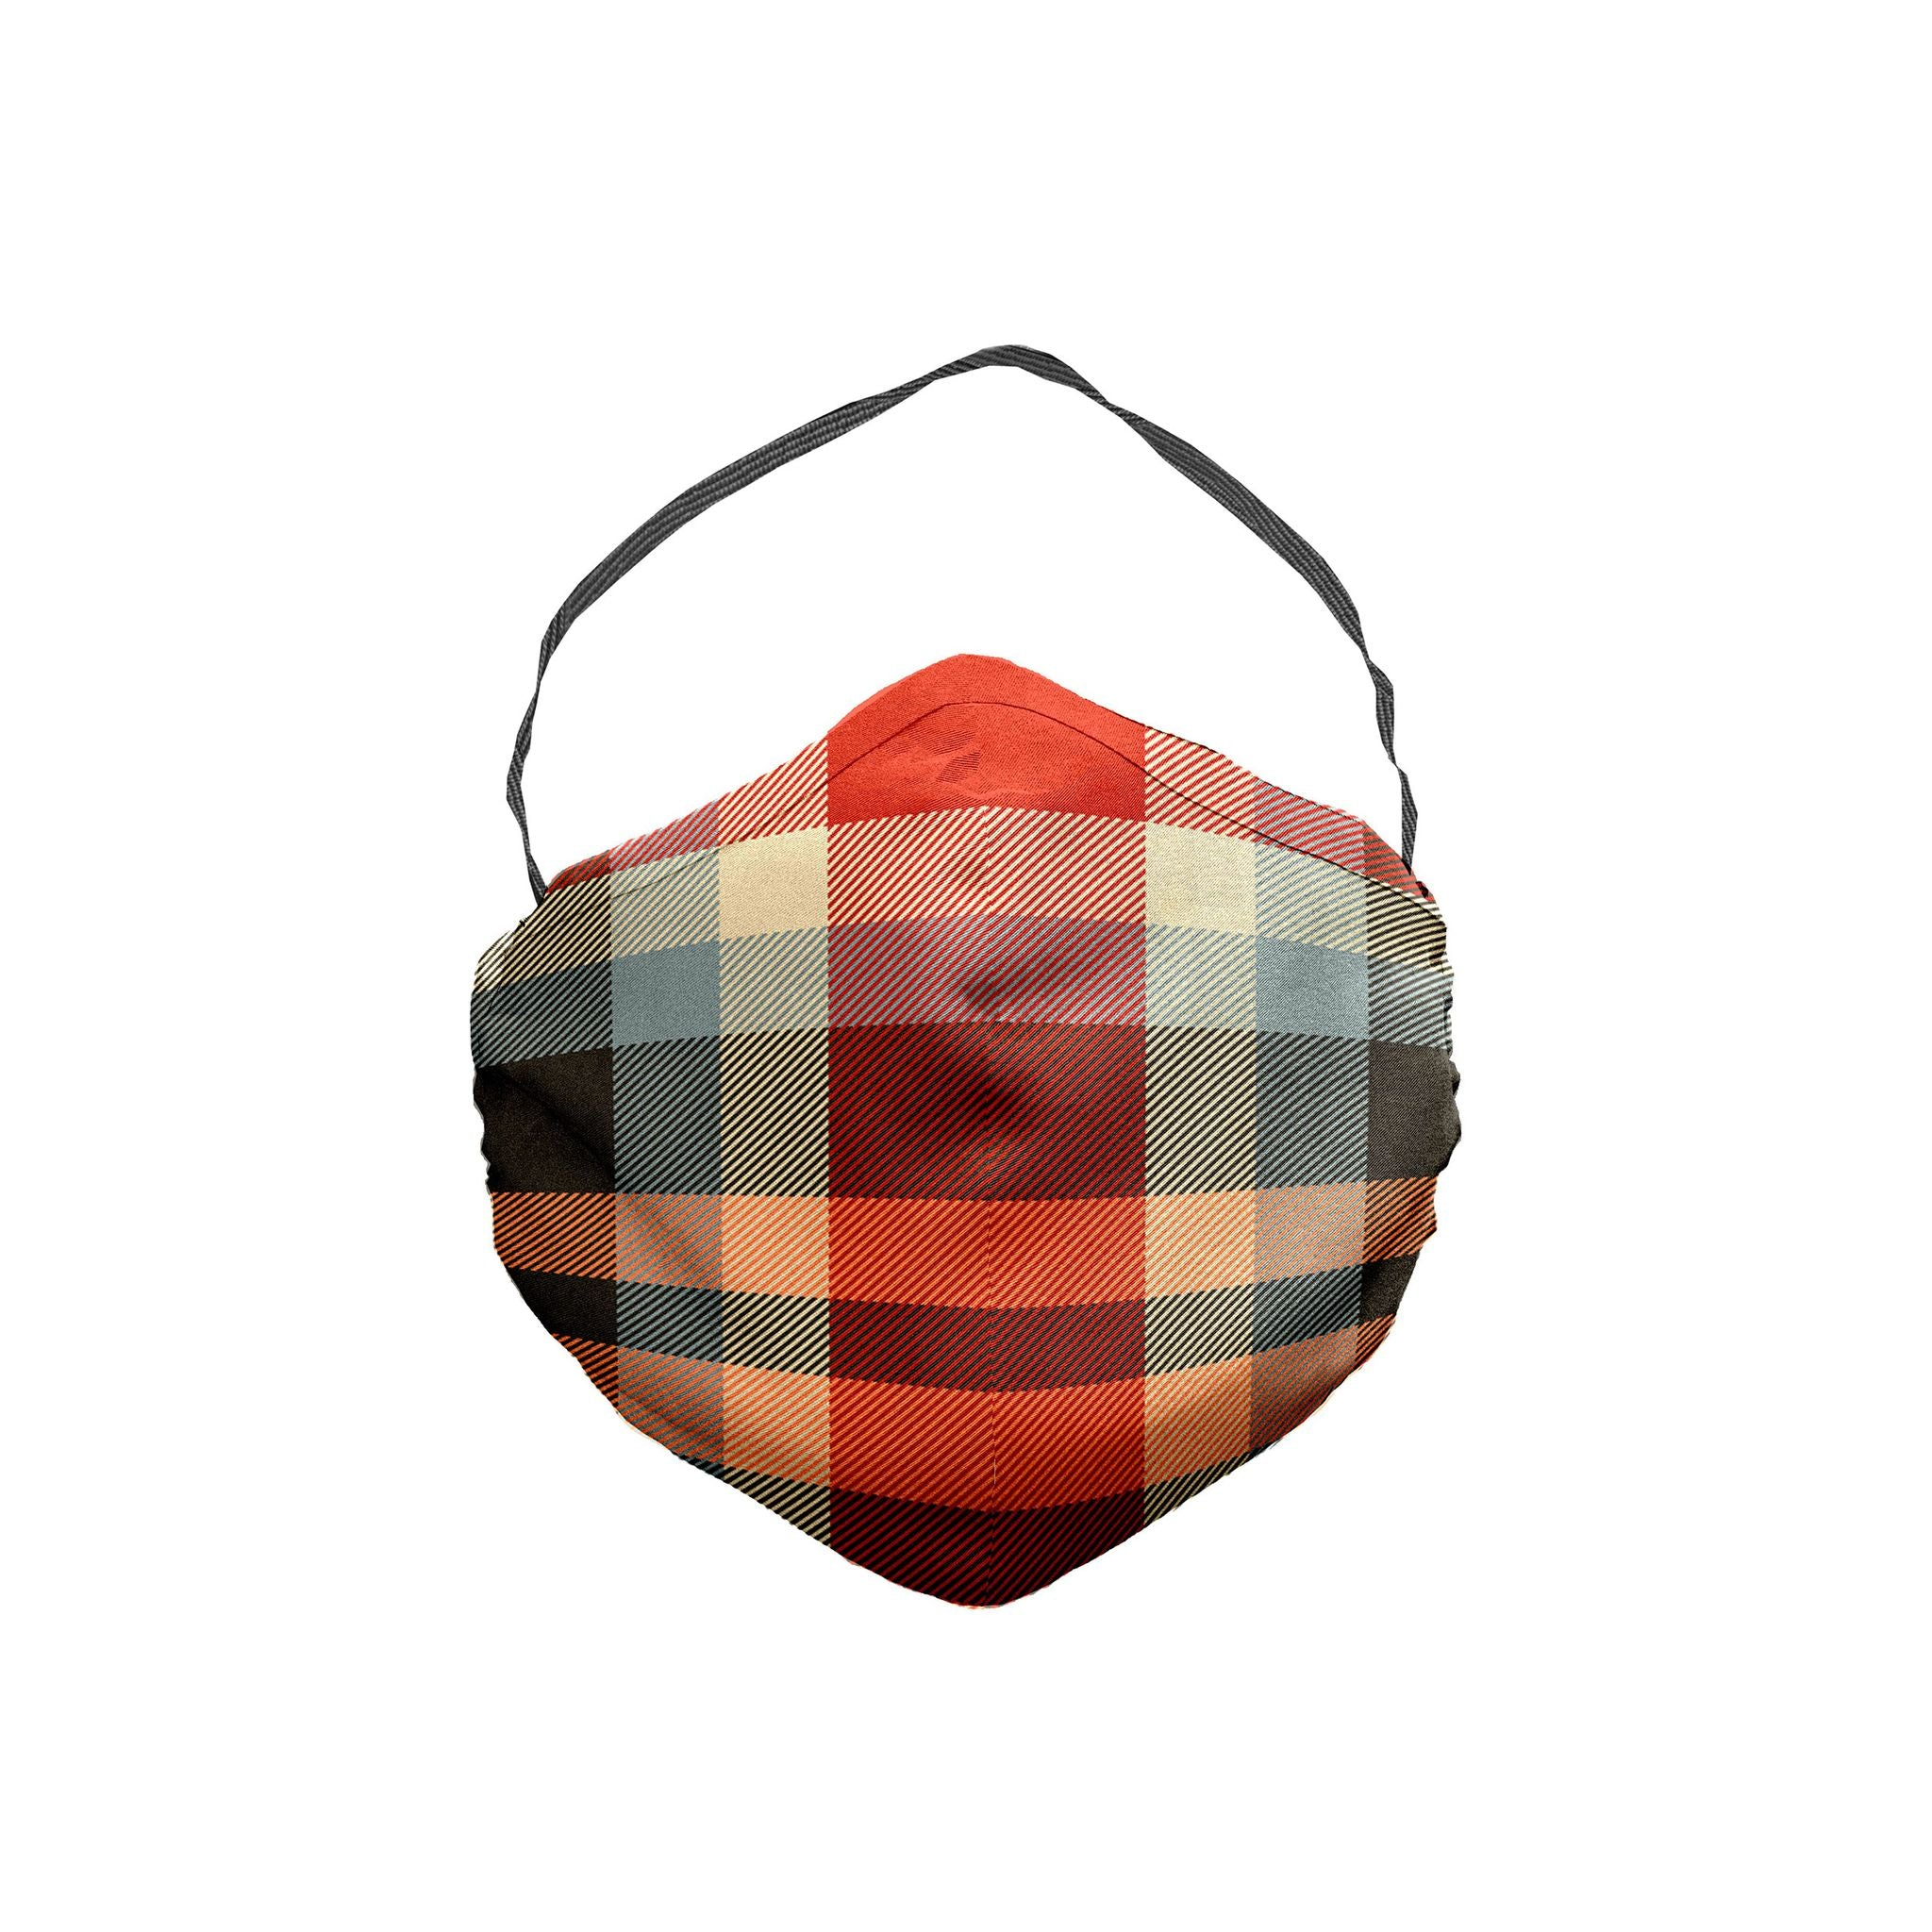 The Kick Inside Plaid Face Mask 5 Pack